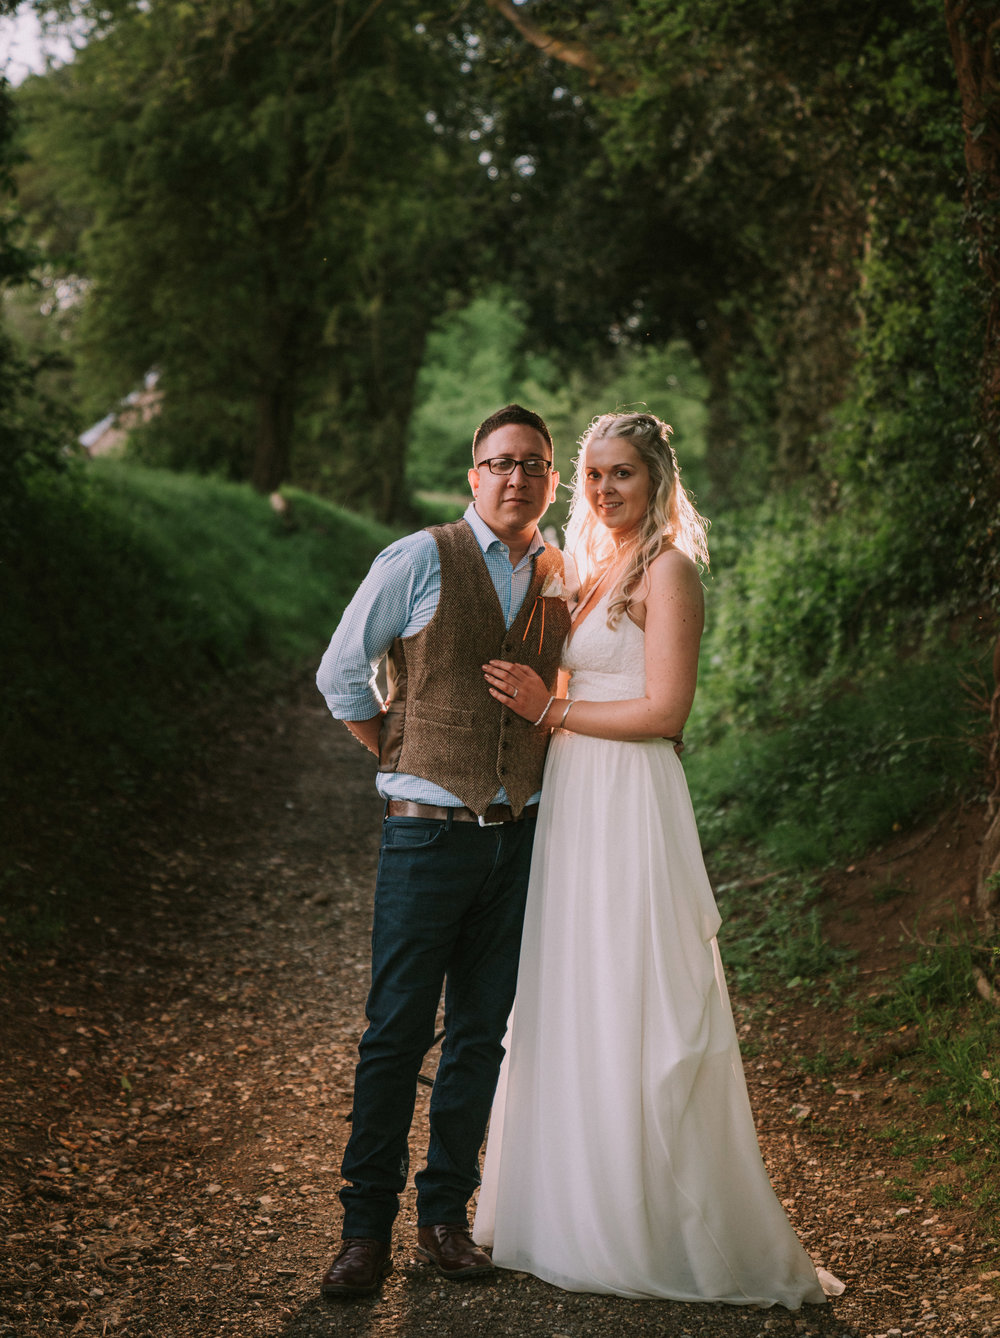 wedding-photography-tewinbury-farm-barn-hertfordshire-london-58